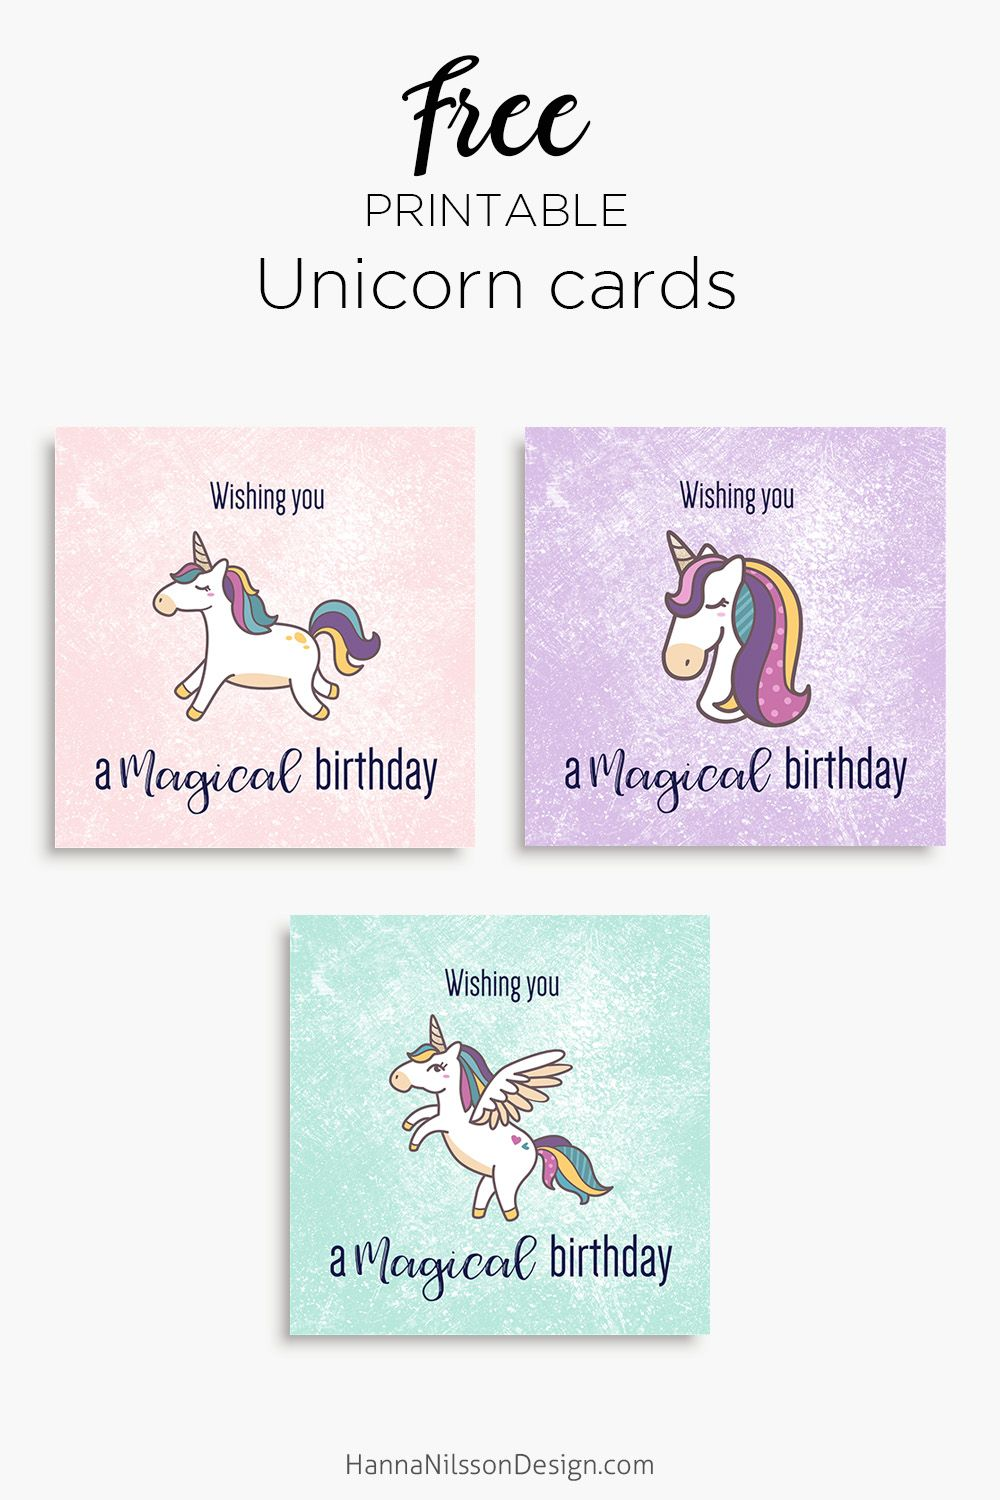 Magical unicorn birthday cards free printable download magical unicorn birthday cards free printable download greeting cards kristyandbryce Images